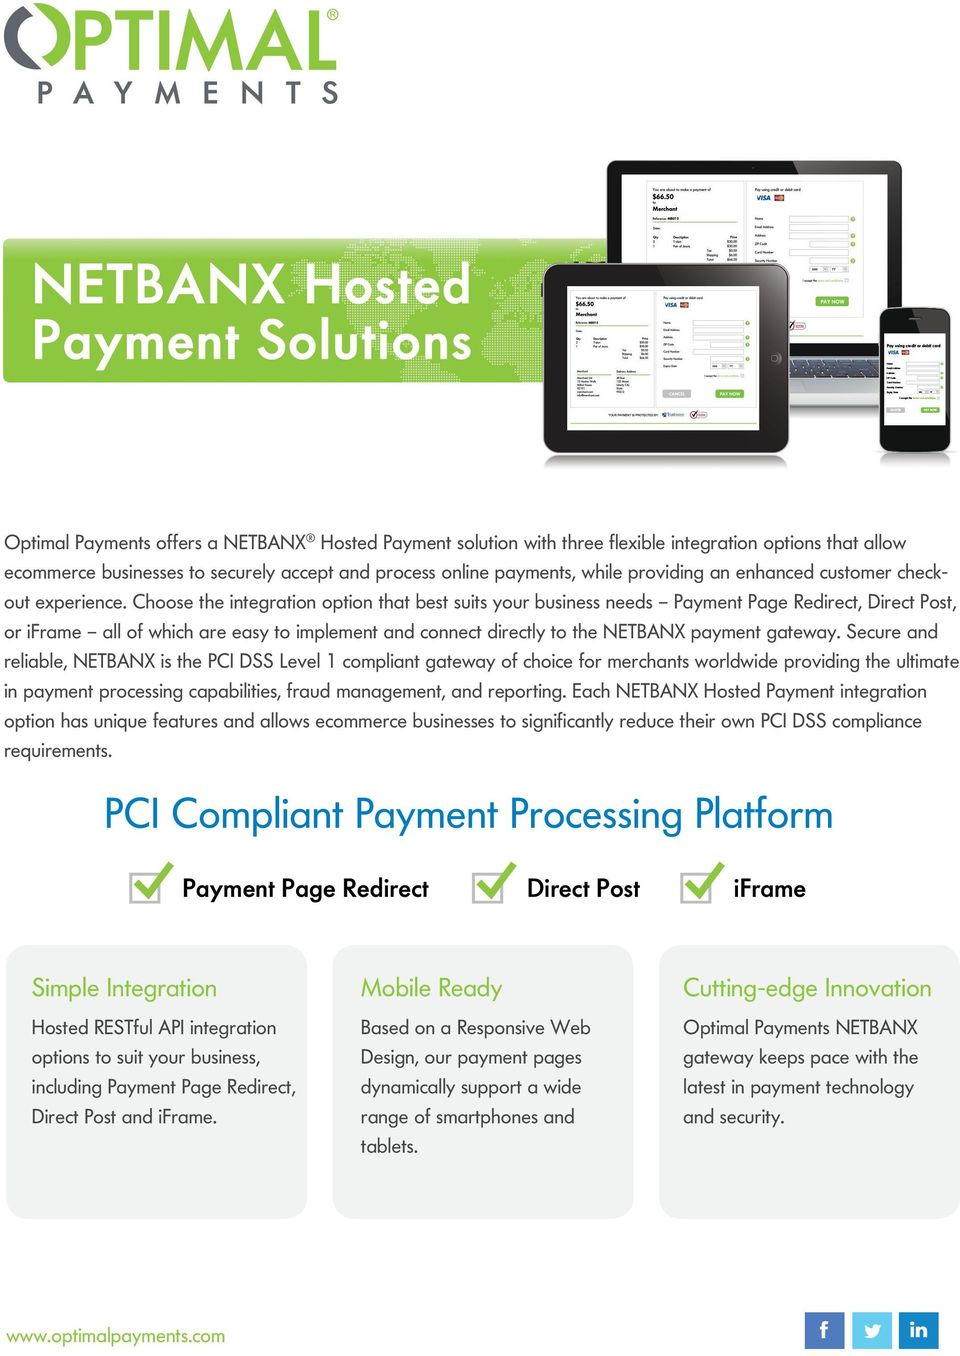 Choose the integration option that best suits your business needs Payment Page Redirect, Direct Post, or iframe all of which are easy to implement and connect directly to the NETBANX payment gateway.